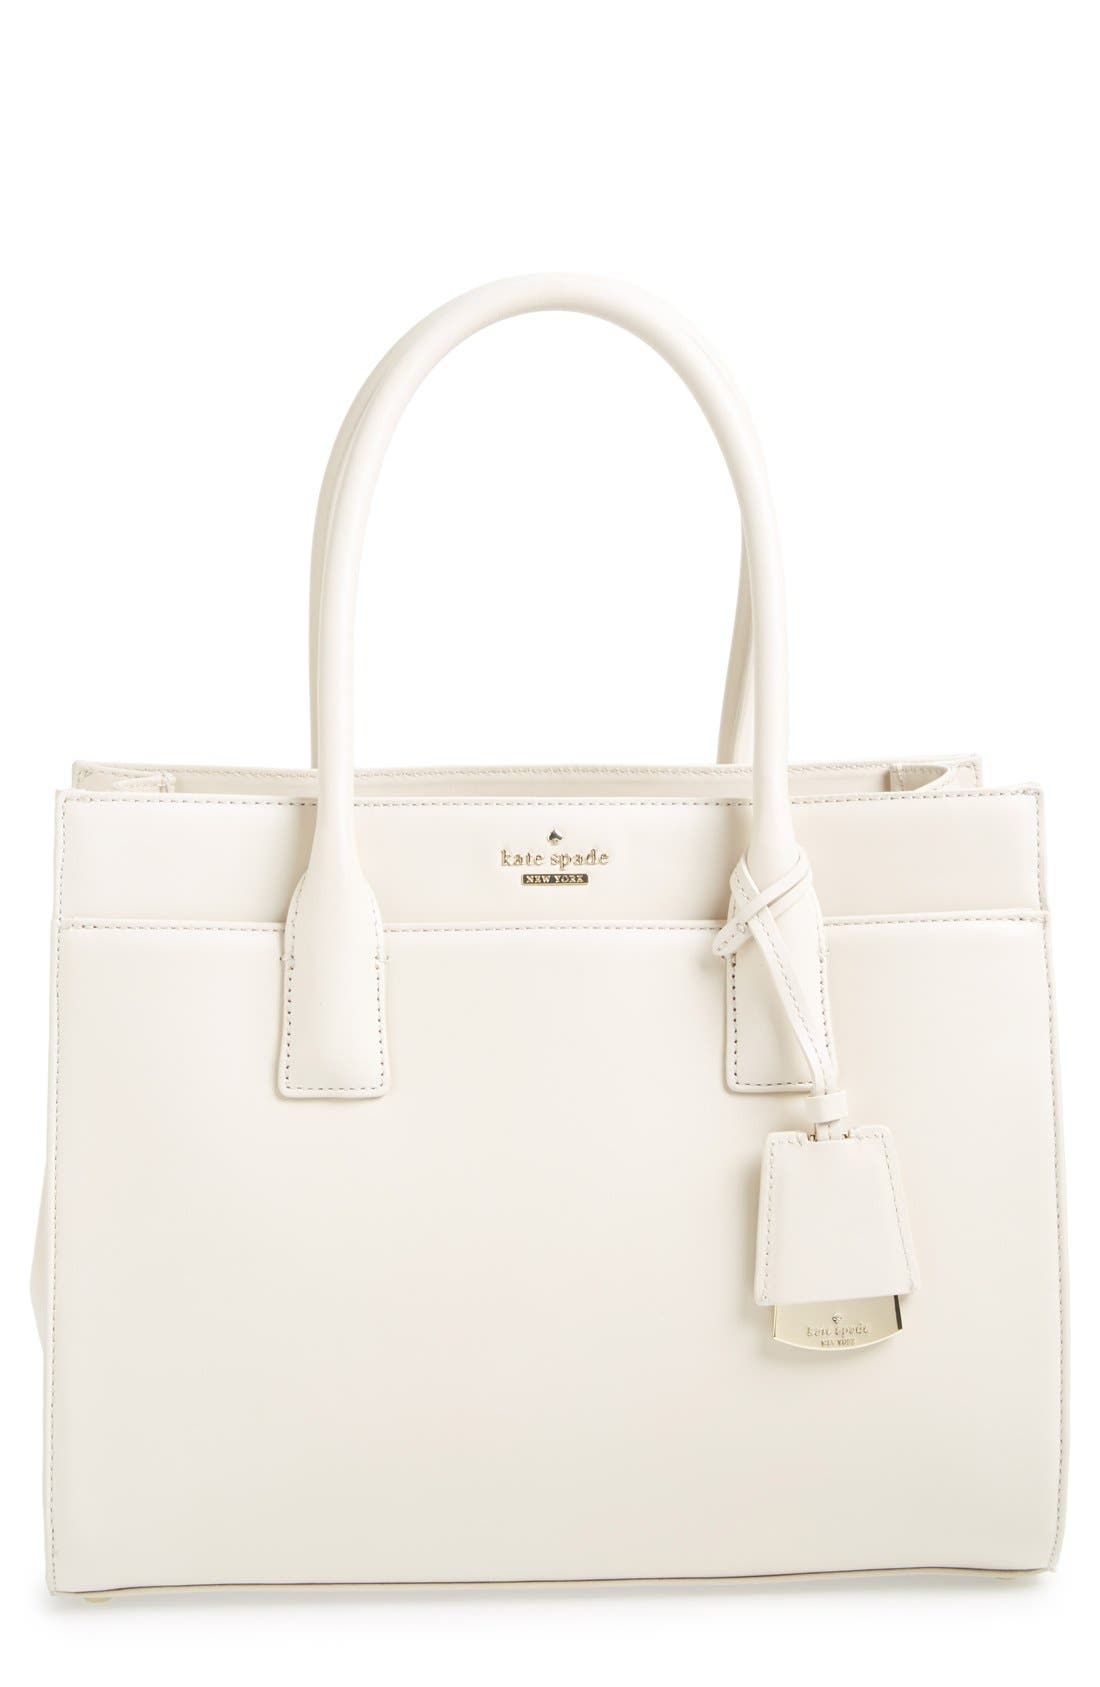 Main Image - kate spade new york 'lucca drive - candace' leather tote